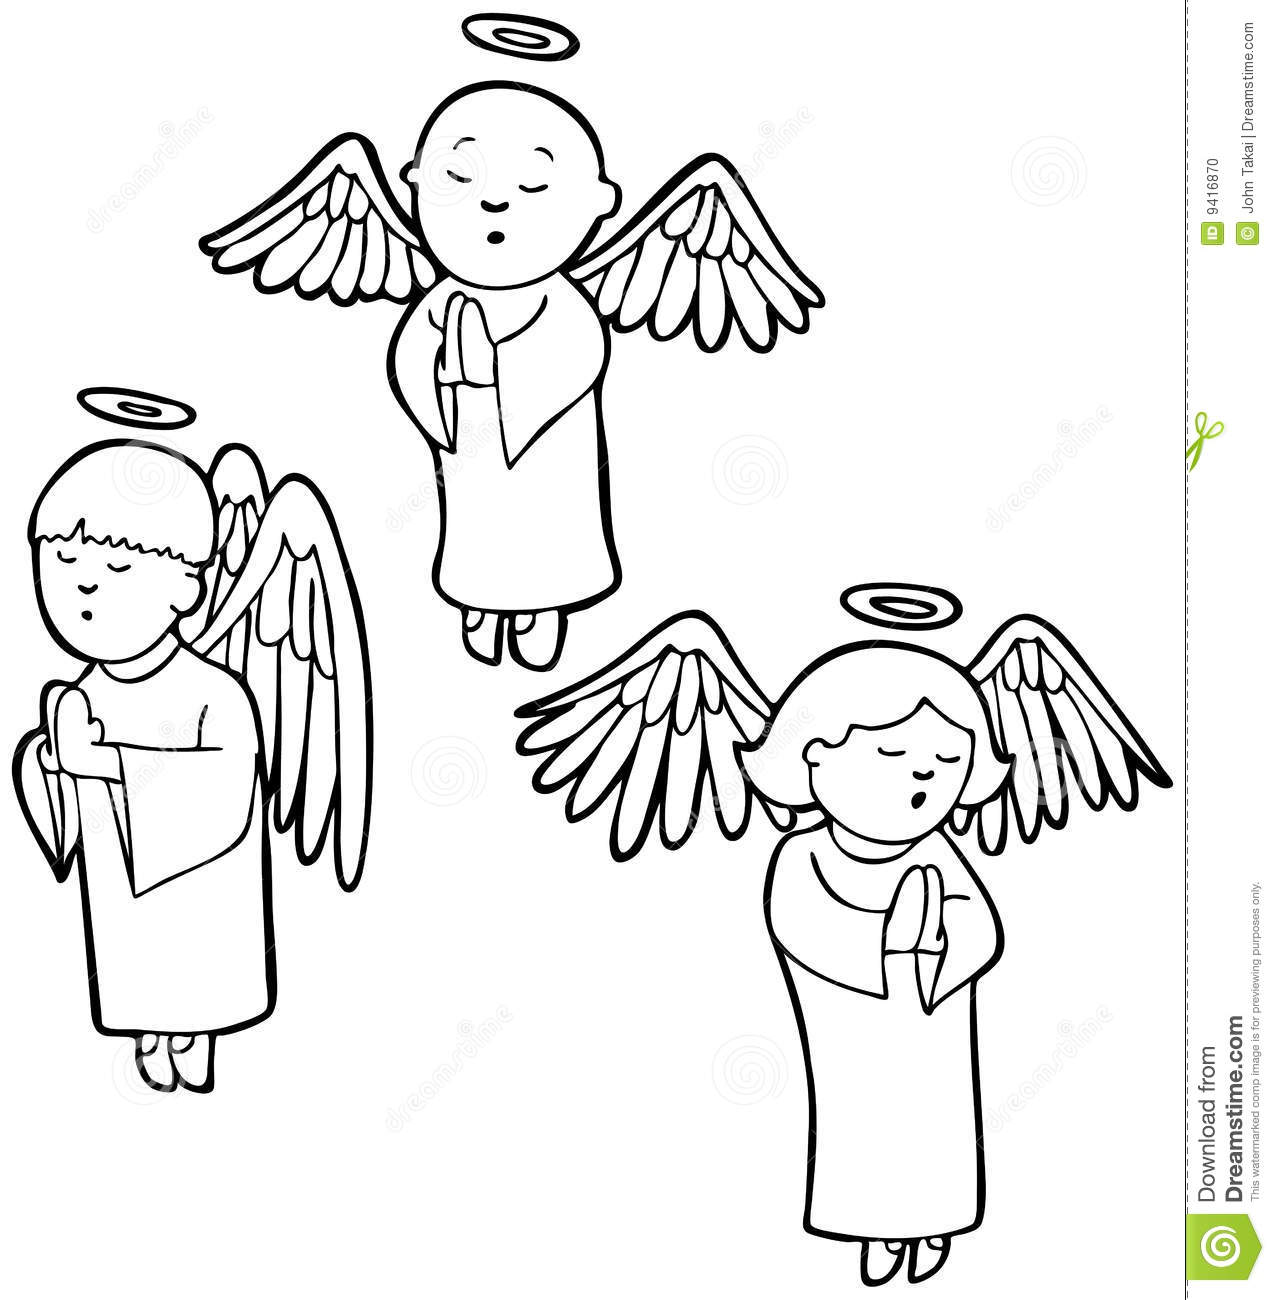 angels praying black and white stock vector illustration of rh dreamstime com angel clip art black and white silhouette christmas angel clipart black and white